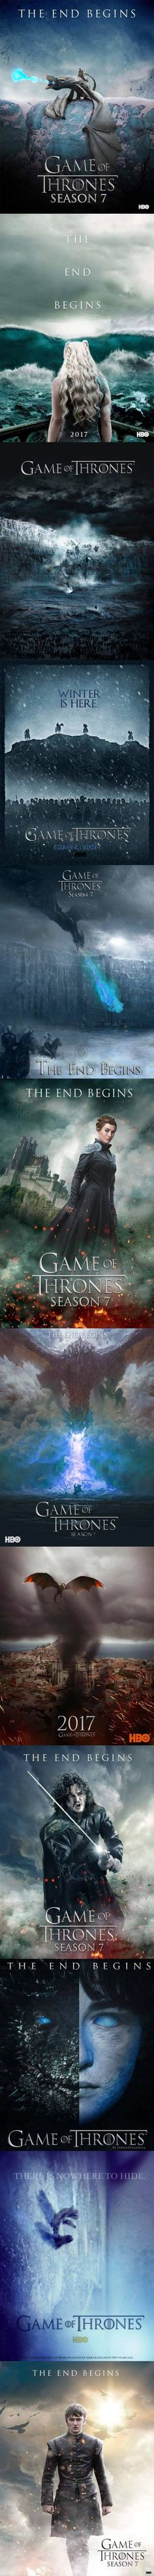 Game of Thrones Season 7 Posters (Fan Made)  The Grumpy Fish